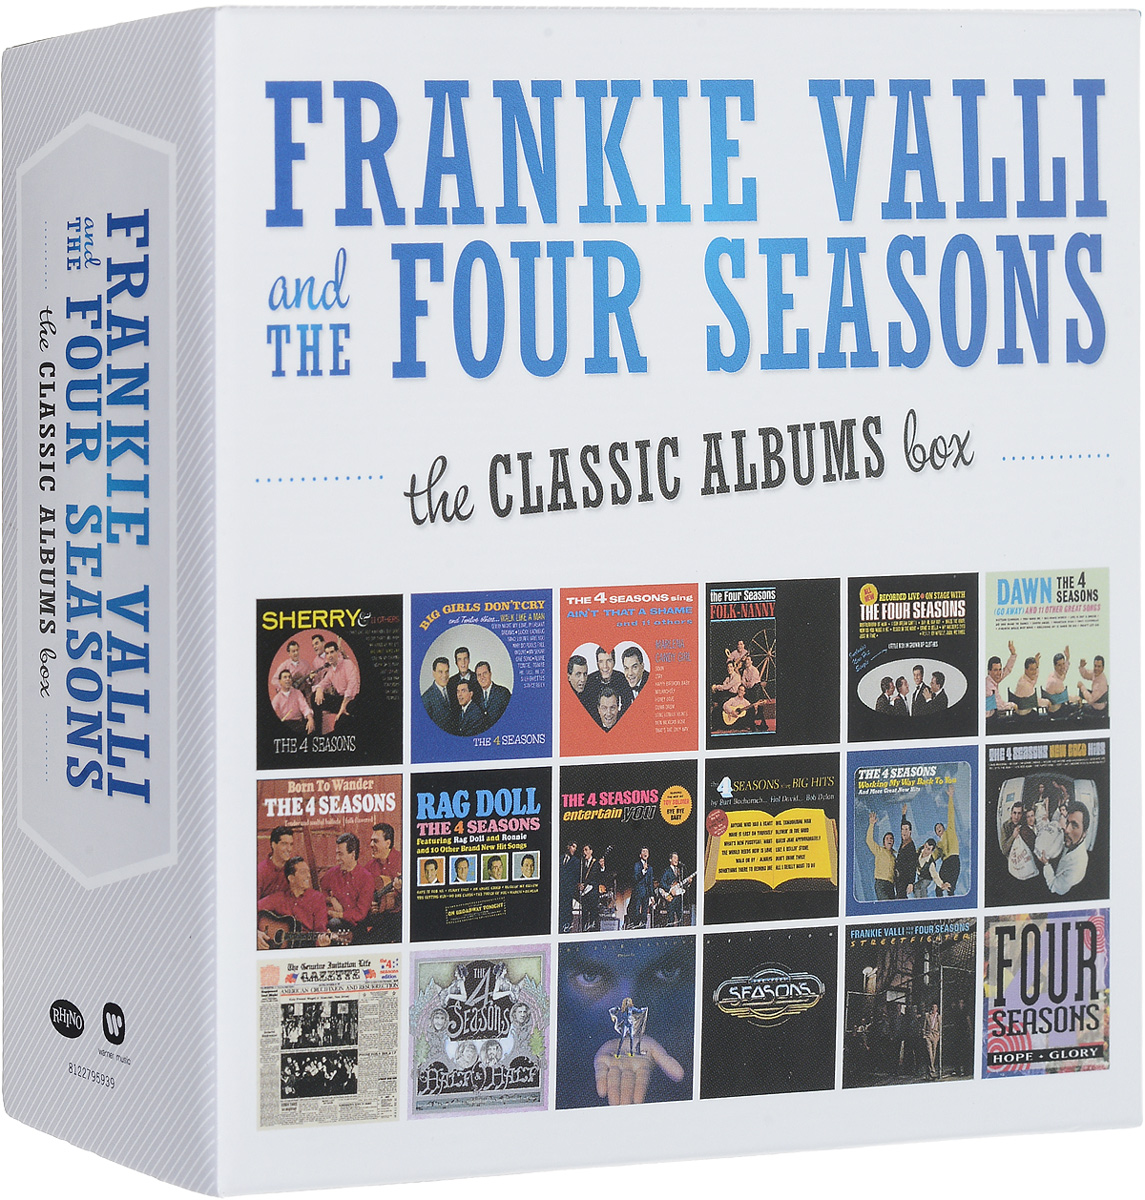 Фрэнки Вэлли,The Four Seasons Frankie Valli & The Four Seasons. The The Classic Albums Box (18 CD) alexander glazunov the seasons chopiniana